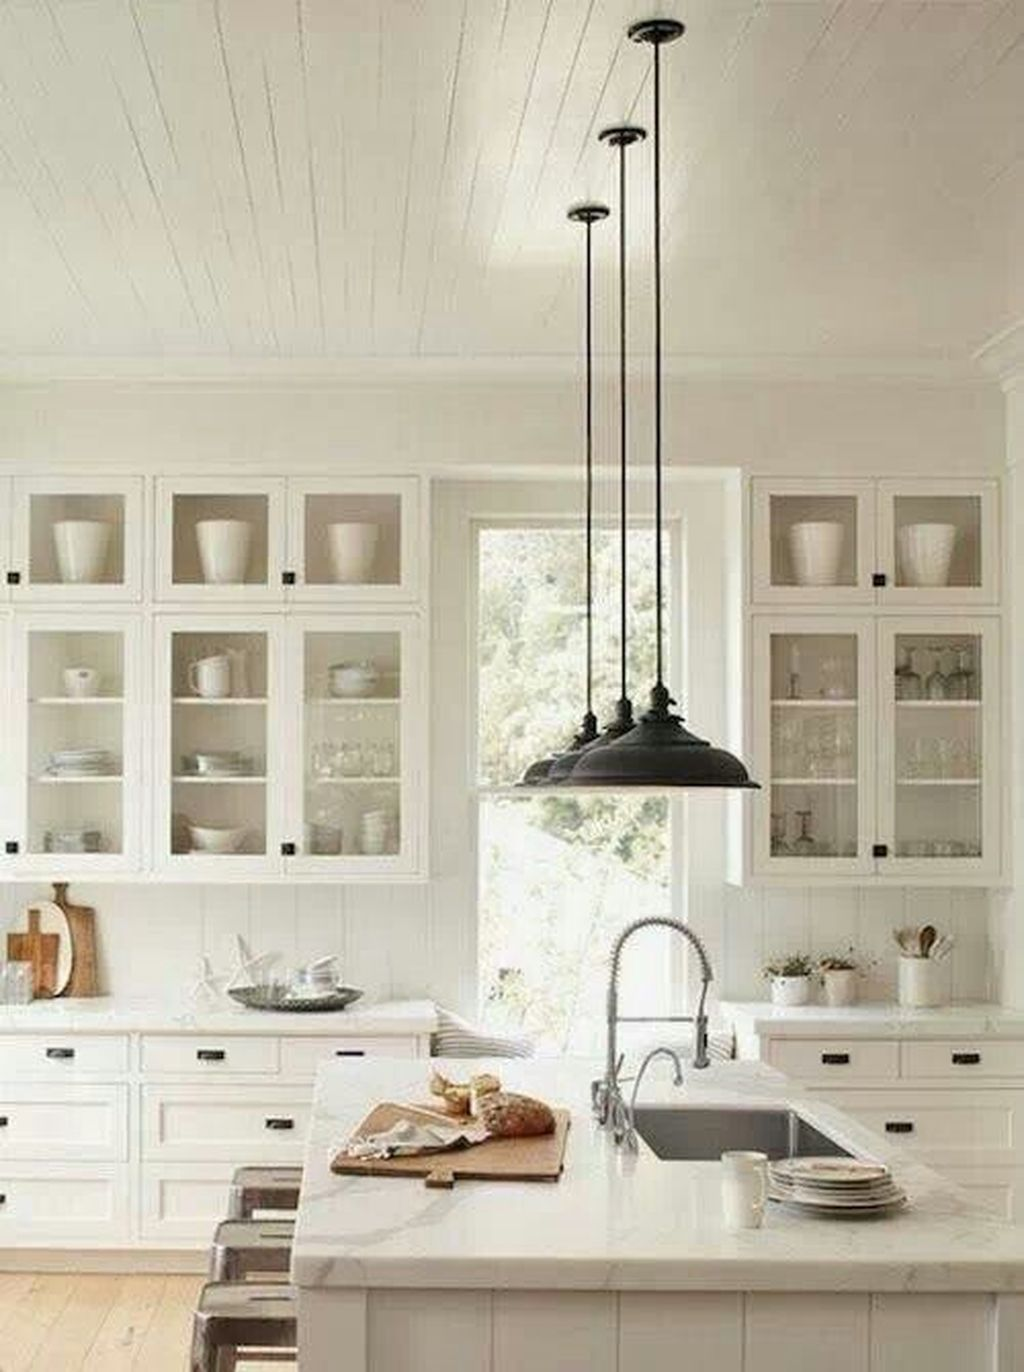 48 The Best Vintage Kitchen Cabinets Ideas To Give Your Home ...